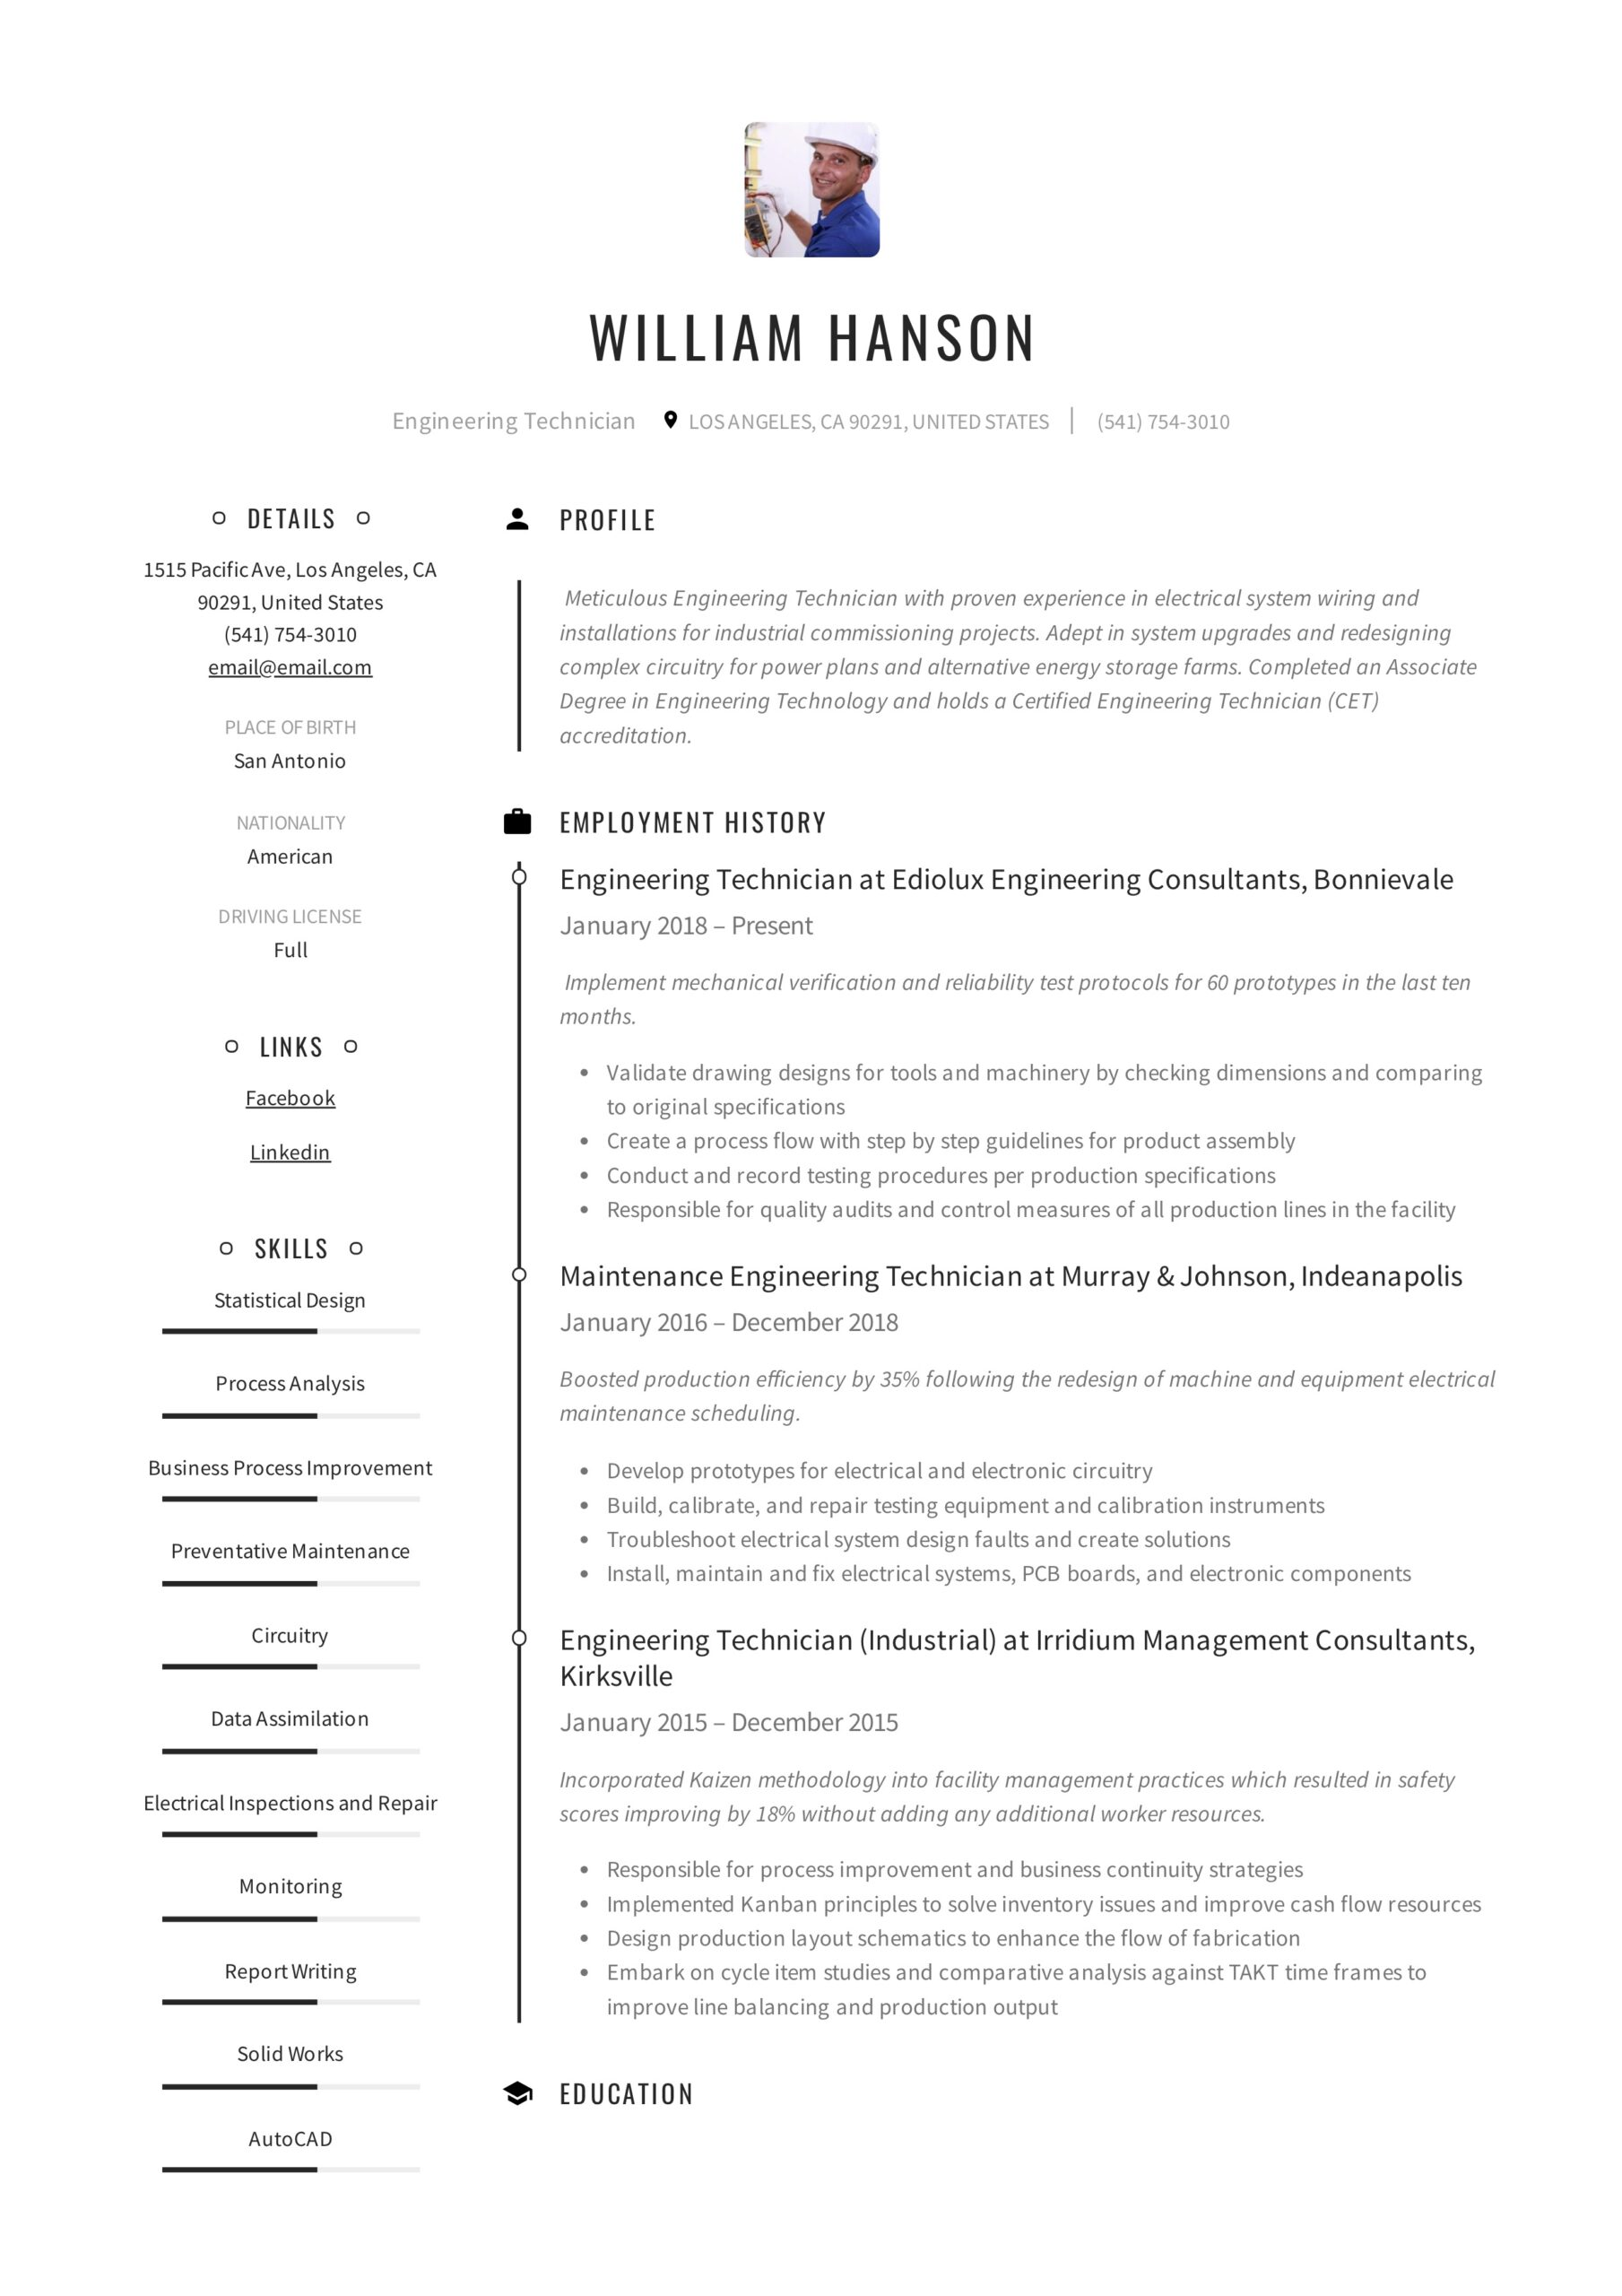 engineering technician resume writing guide templates machine maintenance example of an Resume Machine Maintenance Technician Resume